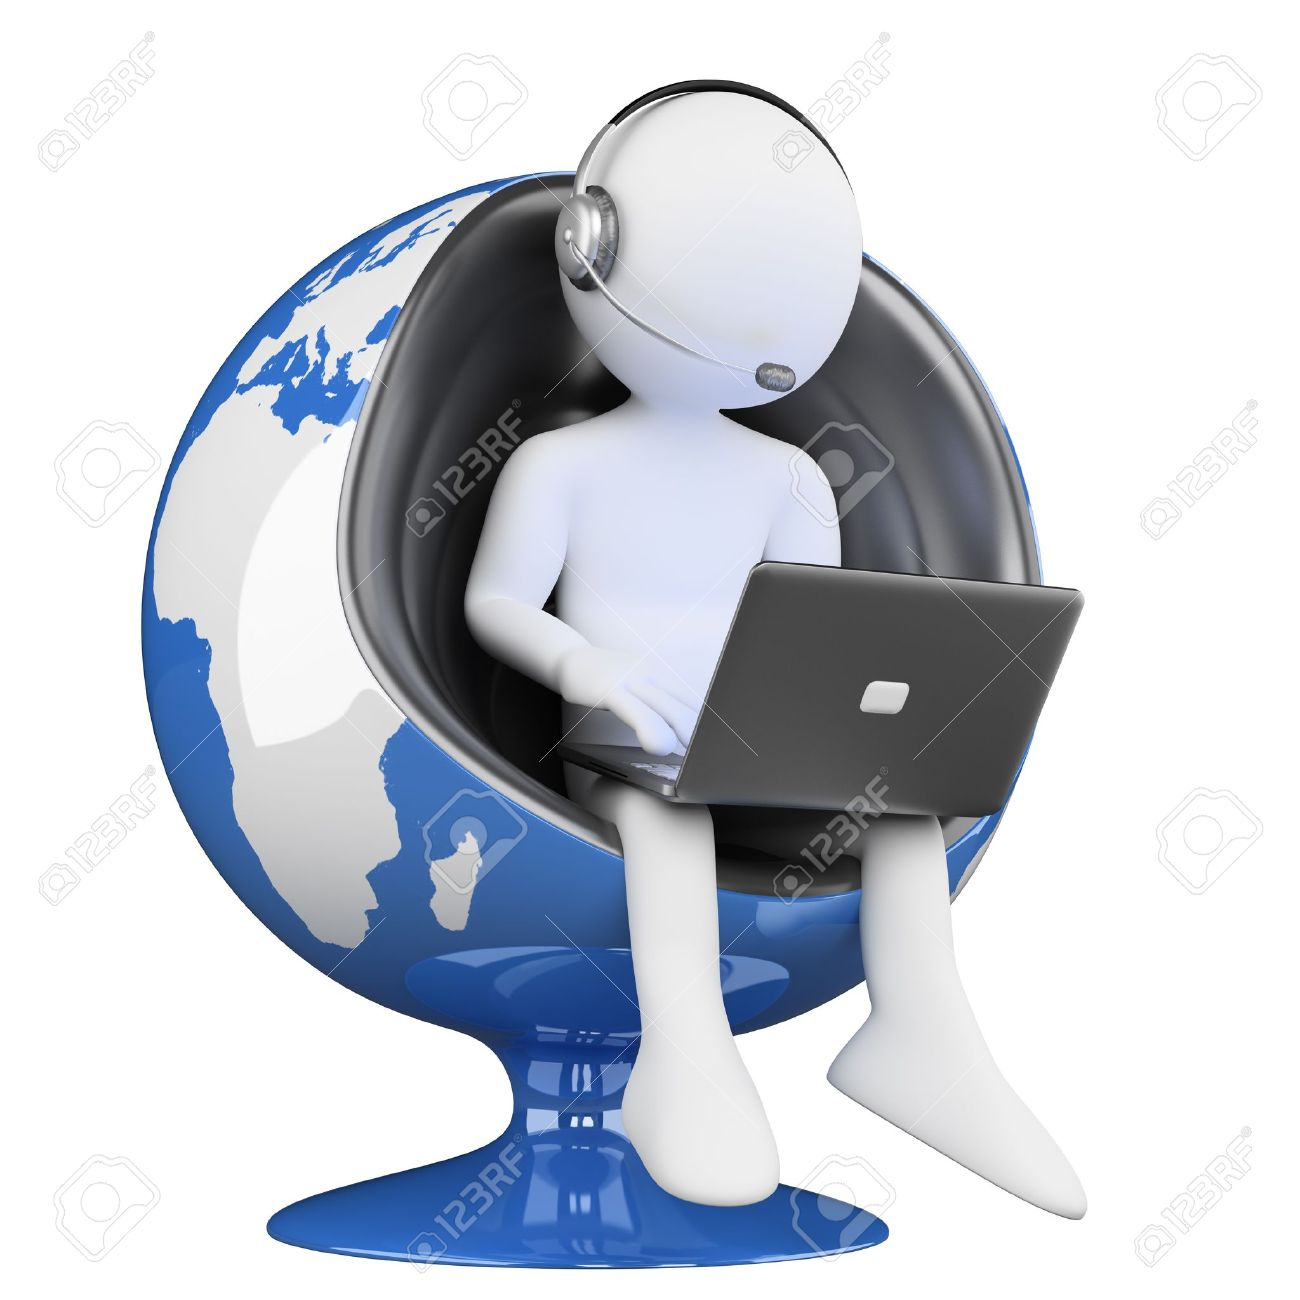 3d white person. Globalization of teleoperators services. 3d image. Isolated white background. Stock Photo - 18312137